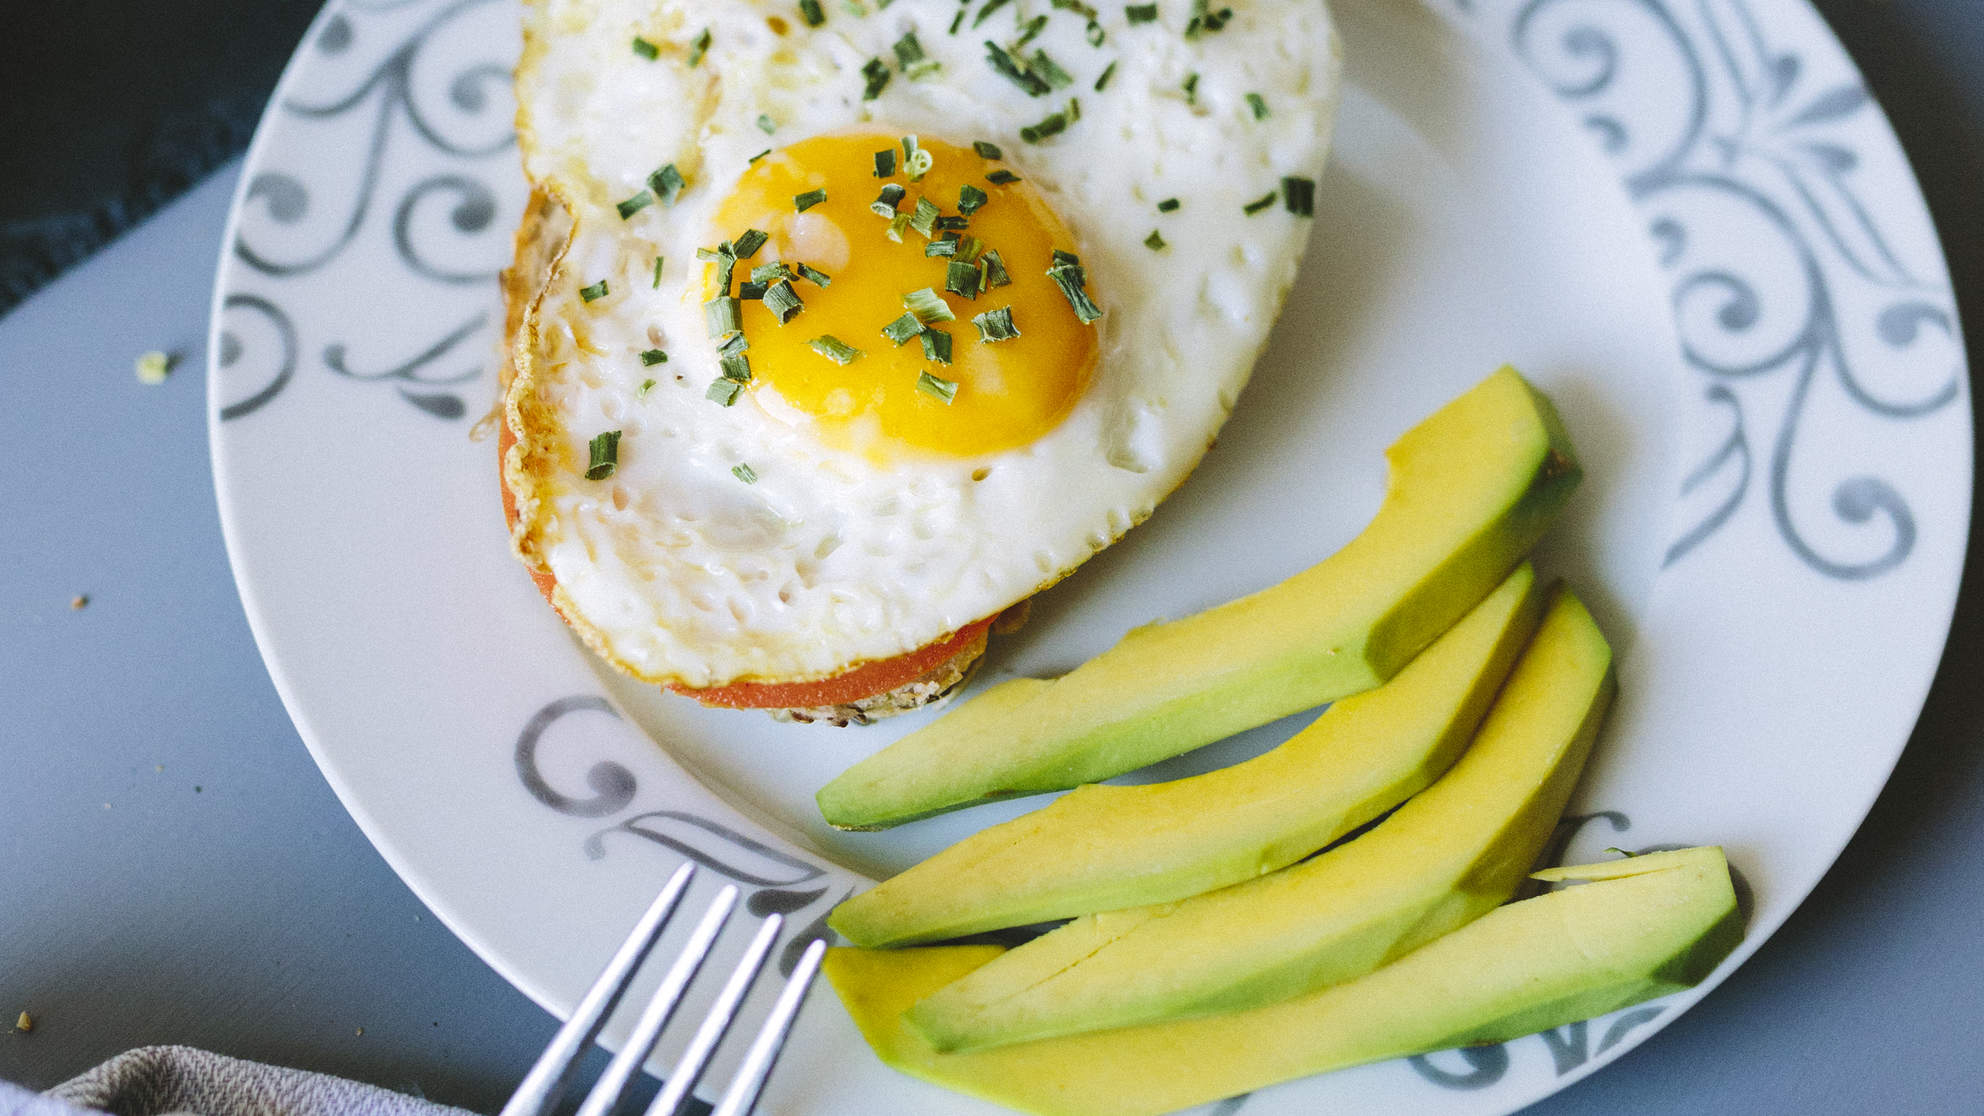 8 Ways to Eat Avocado at Breakfast (If You're Getting a Little Tired of Avocado Toast)